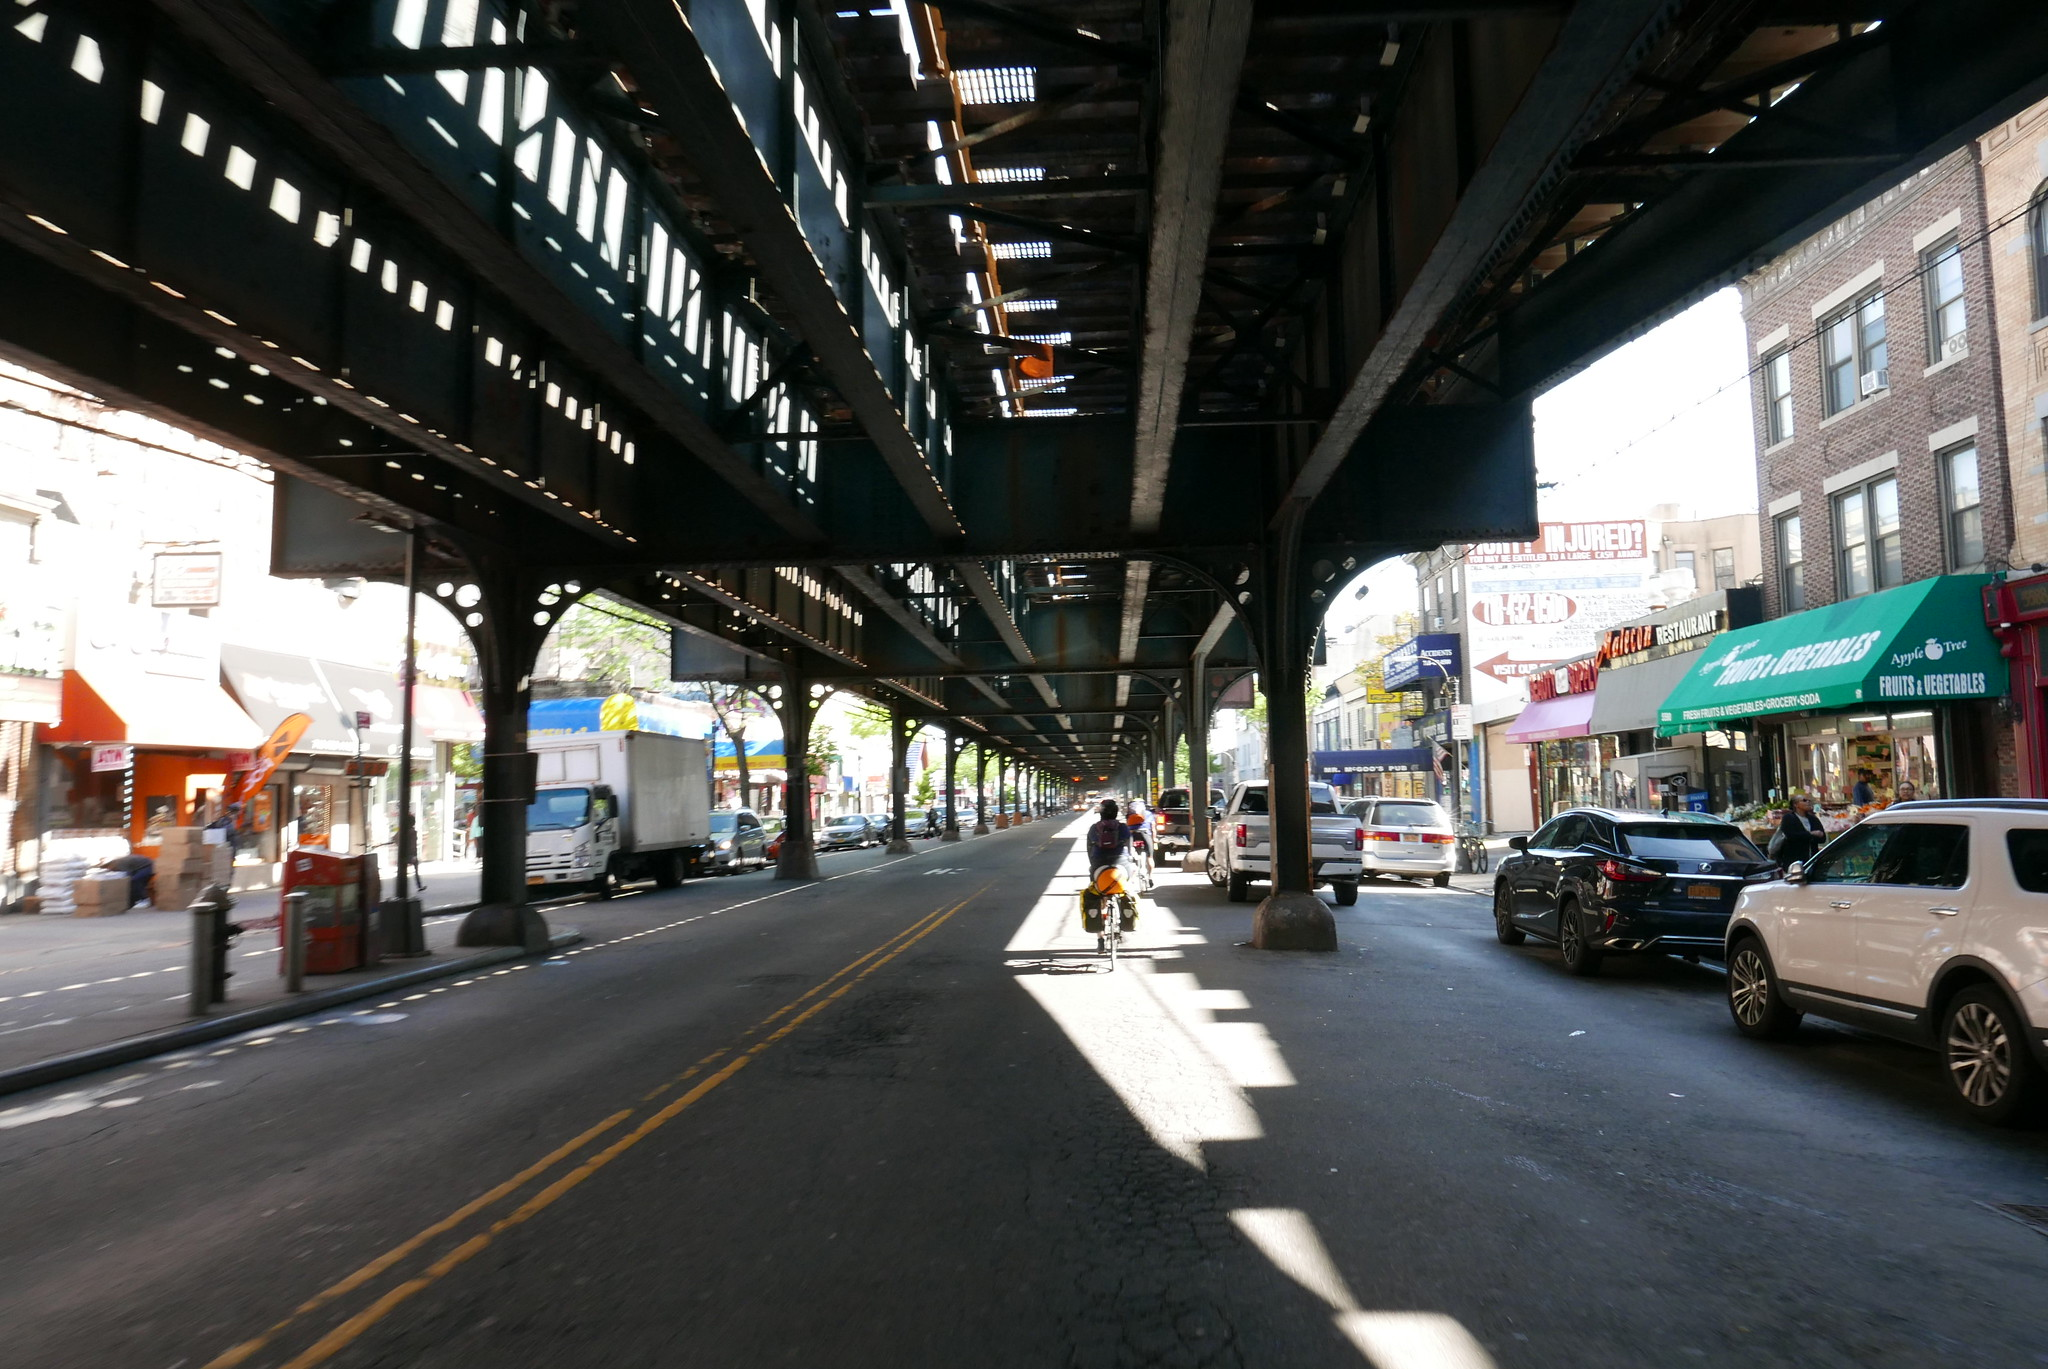 After leaving Manhattan, the group snakes its way under the elevated subways in the Bronx